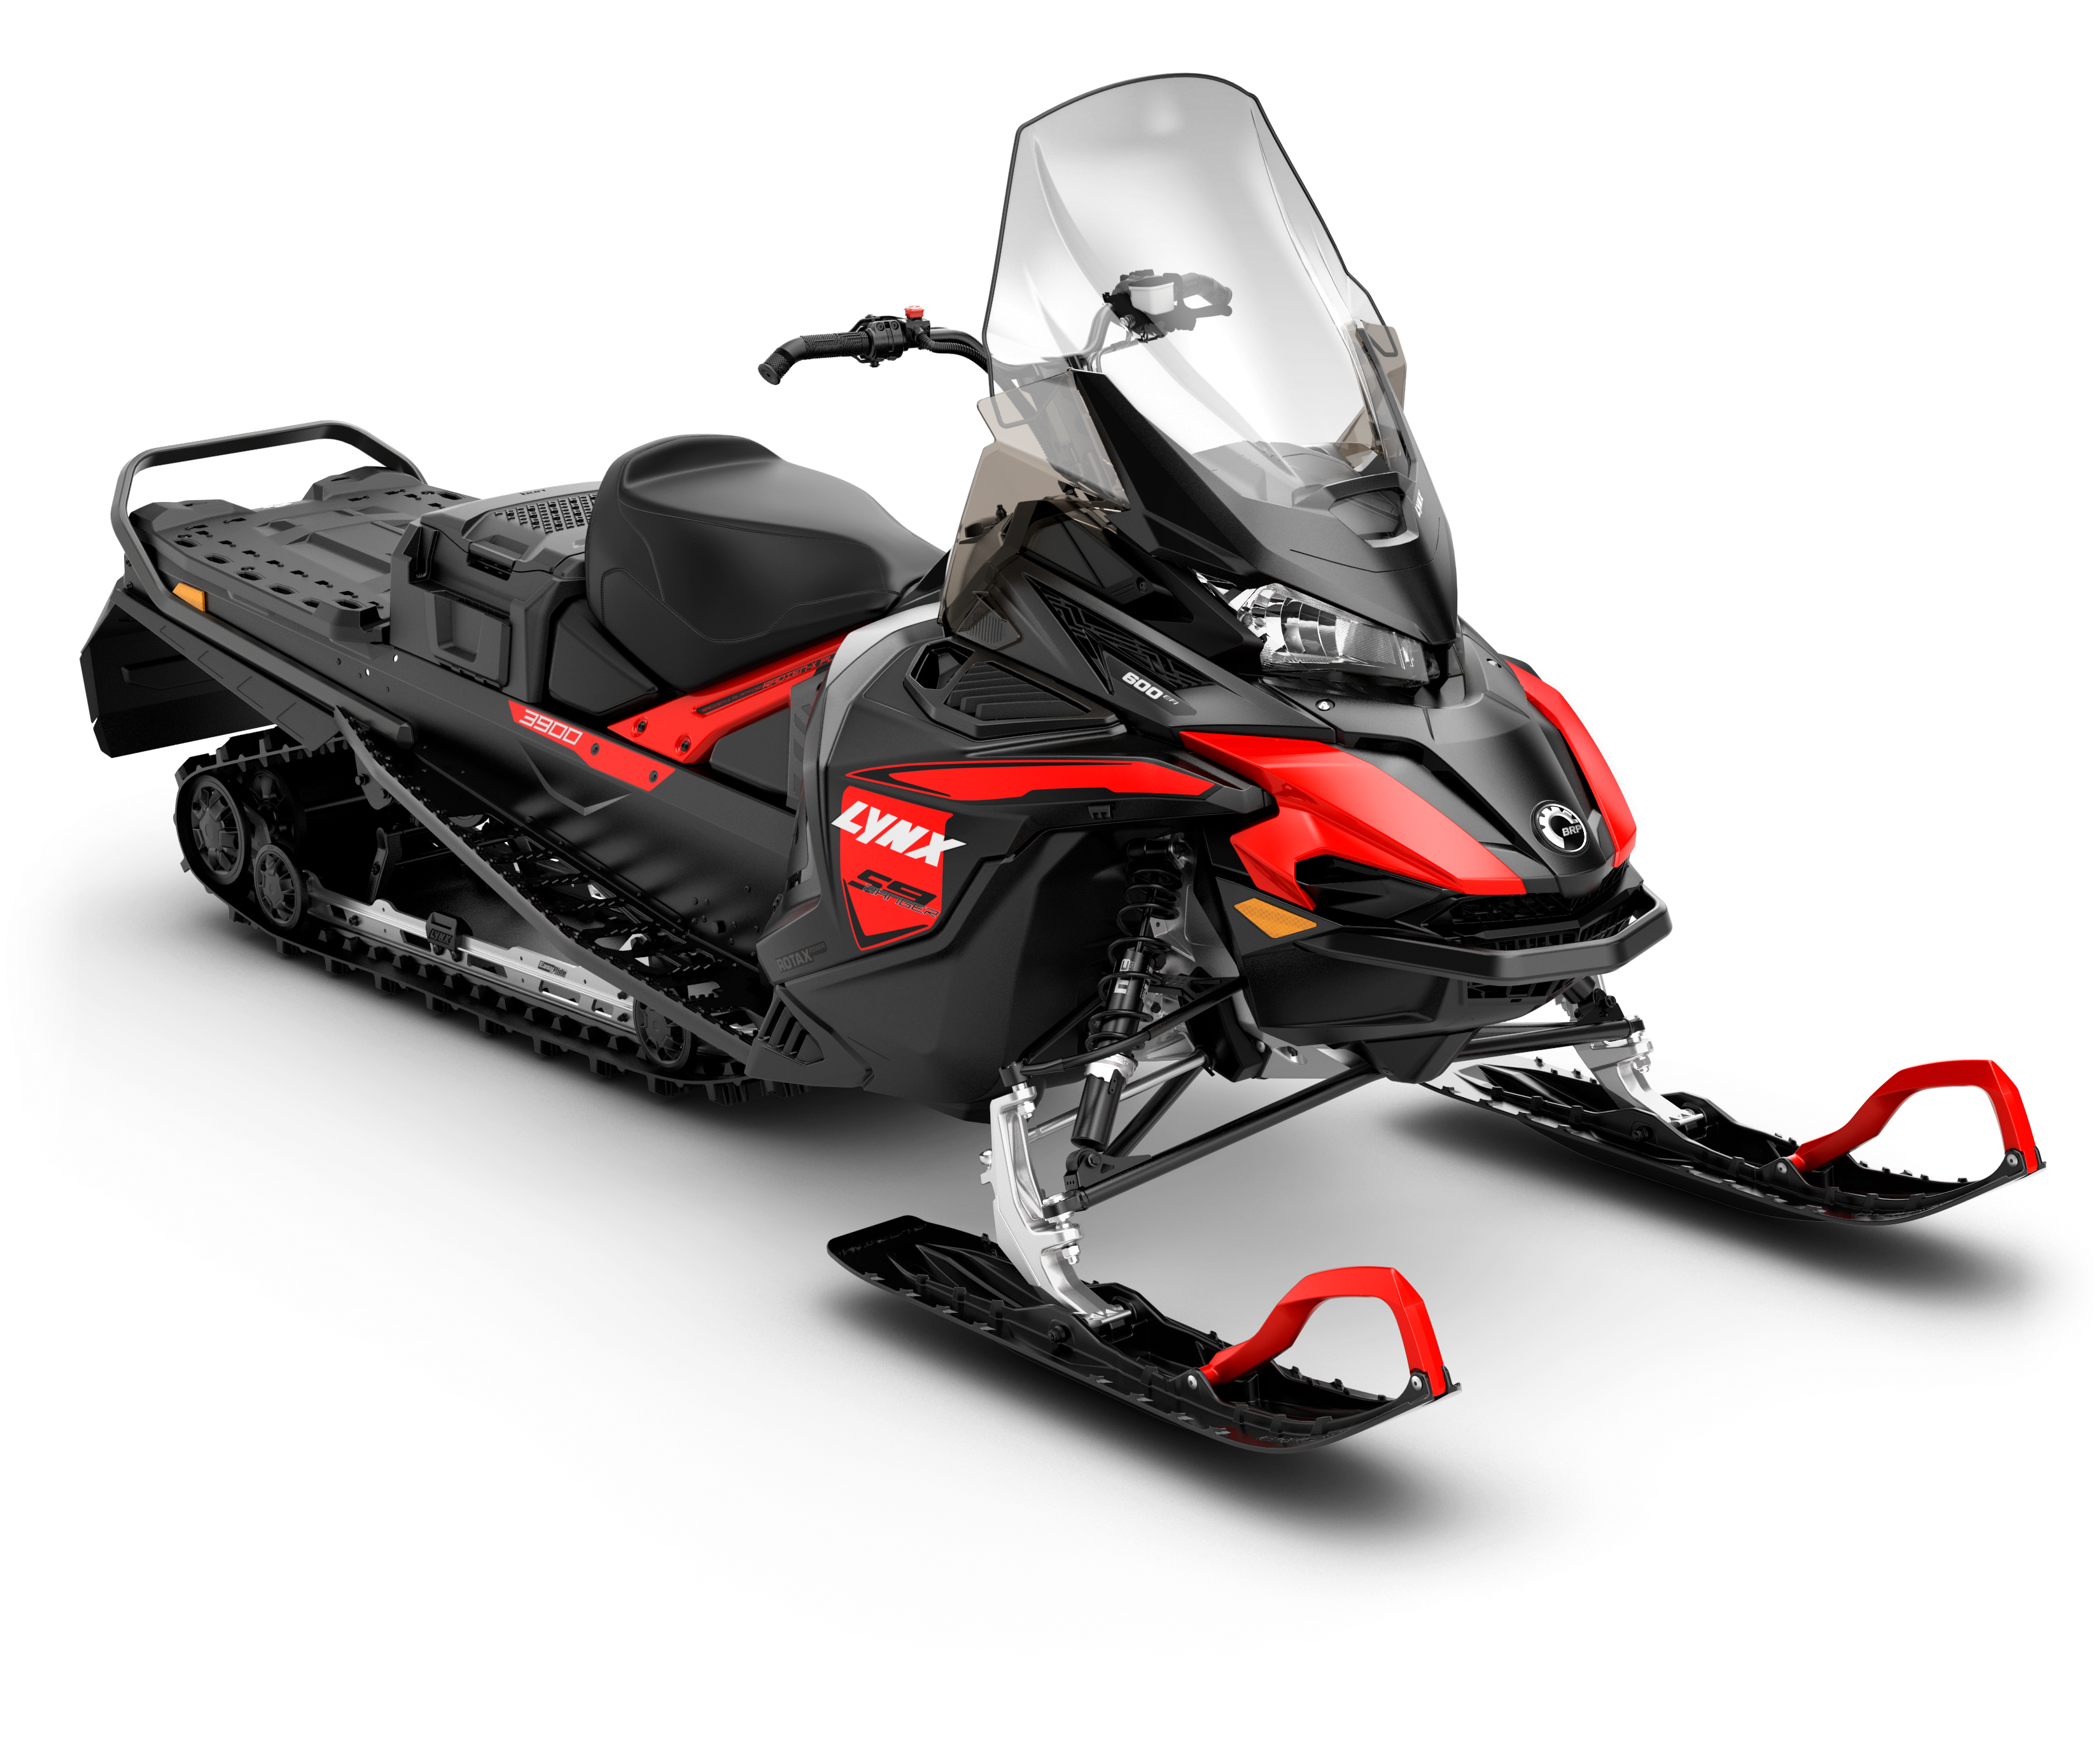 59 Ranger Snowmobile Model 2021